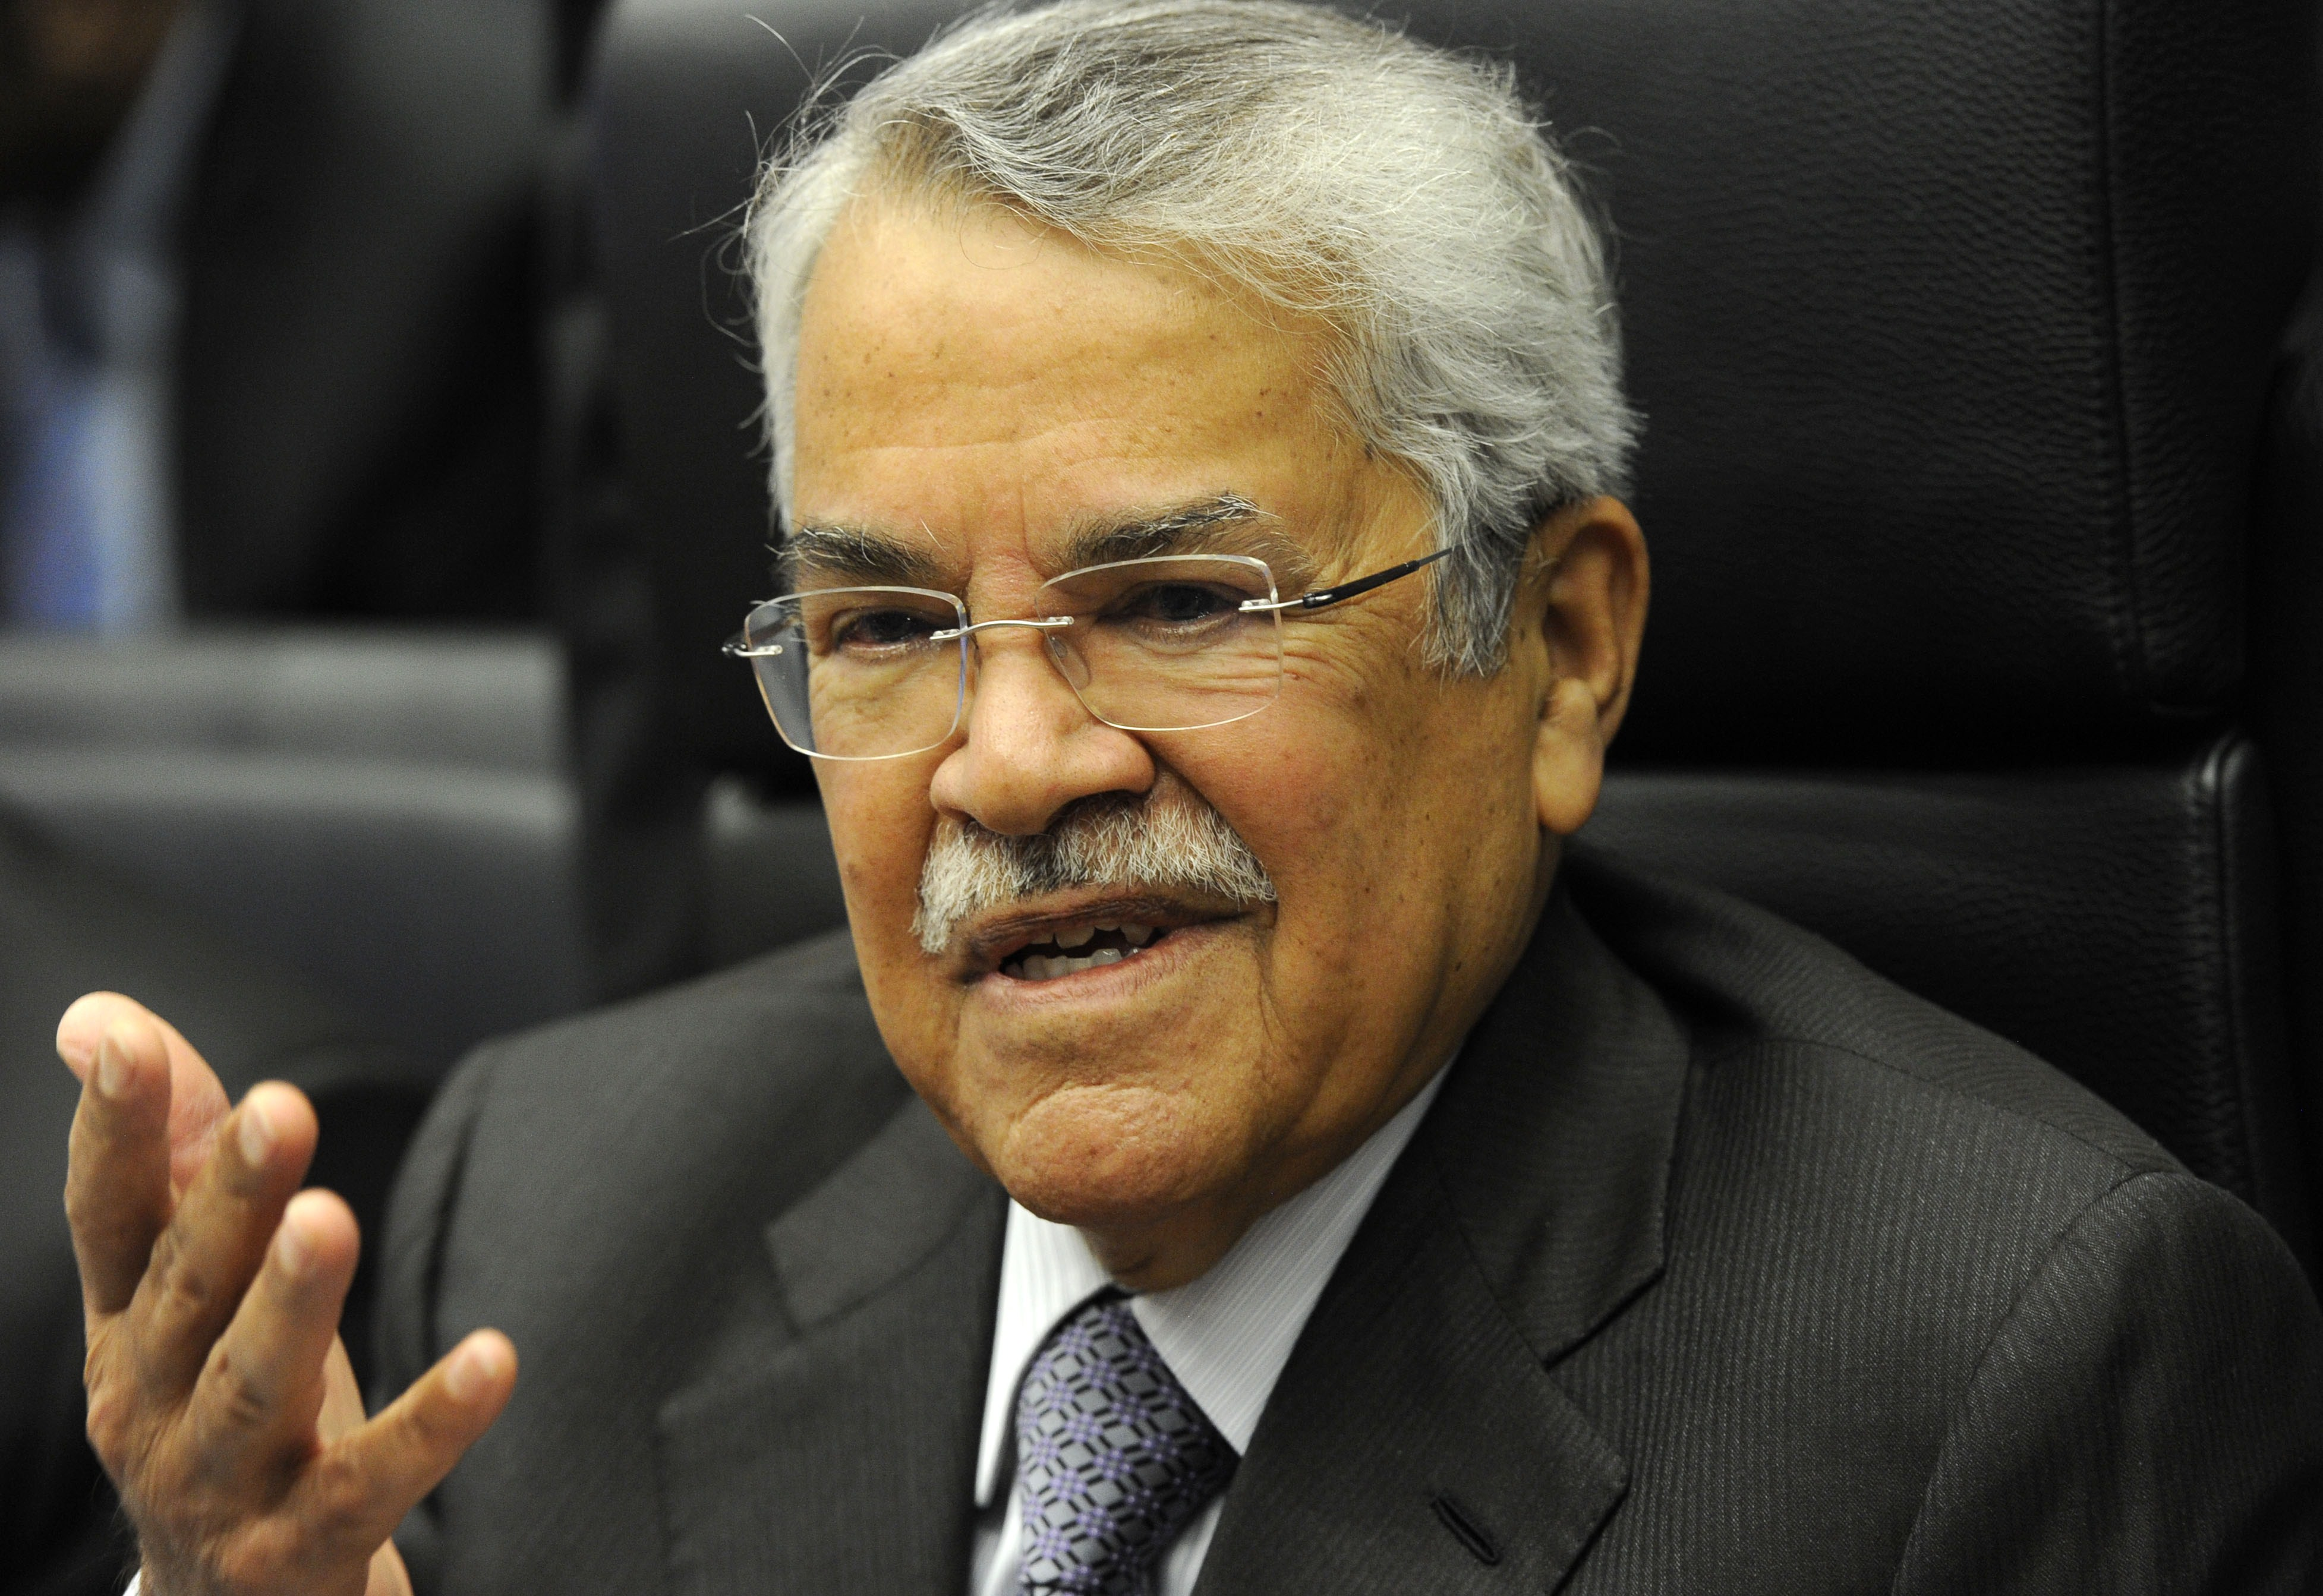 Saudi Oil Minister Ali al-Naimi speaks to journalists ahead of the 166th ordinary meeting of the Organization of the Petroleum Exporting Countries (OPEC) in Vienna, Austria on Nov. 27, 2014.